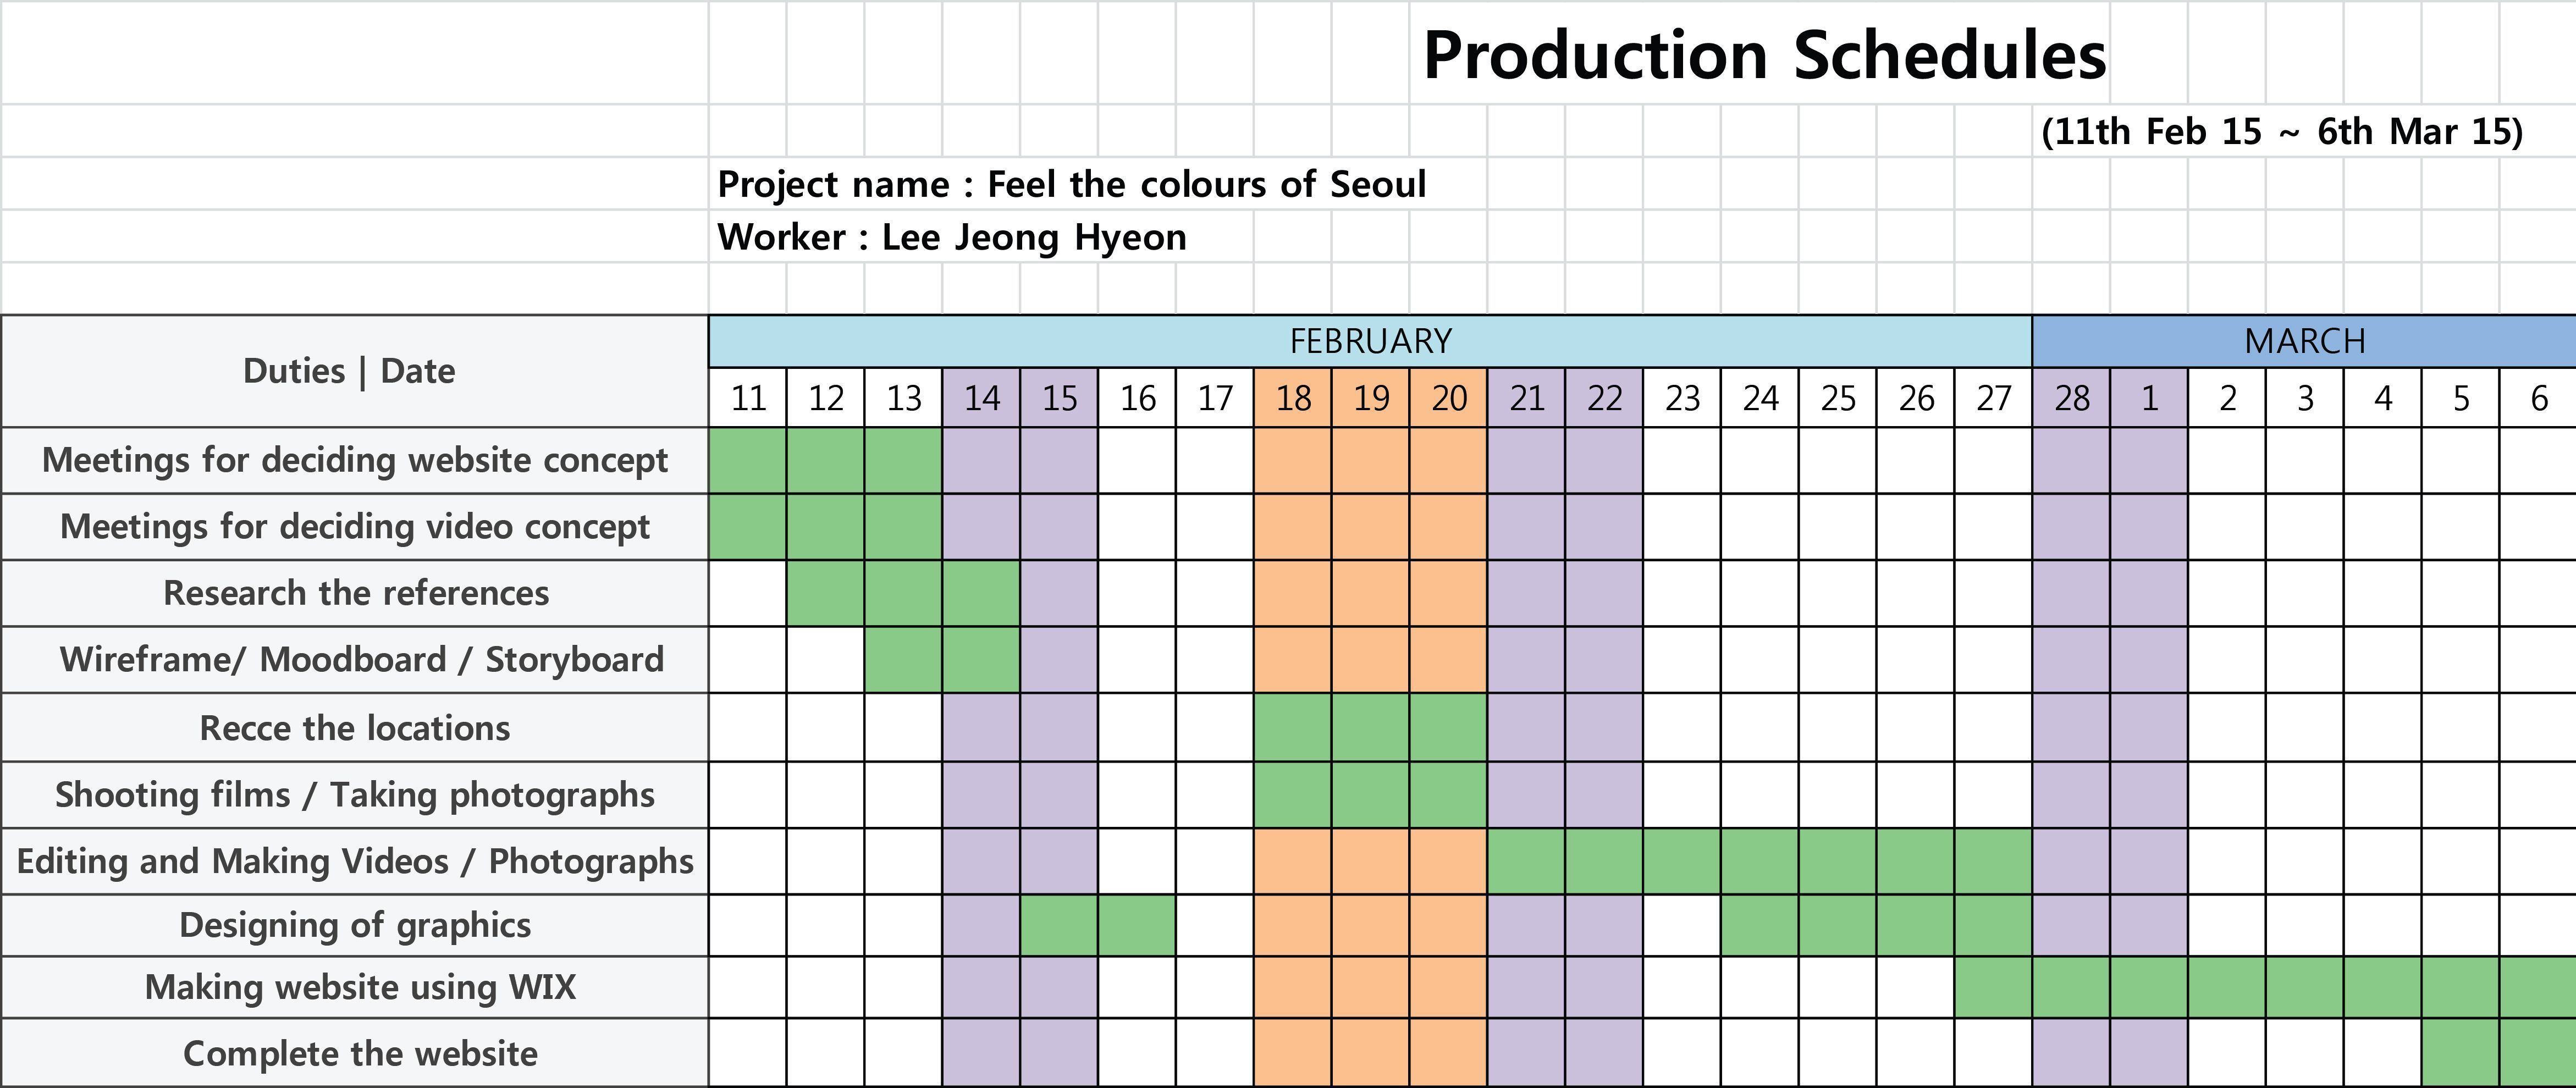 003 Formidable Production Schedule Template Excel Image  Planning Sheet MasterFull